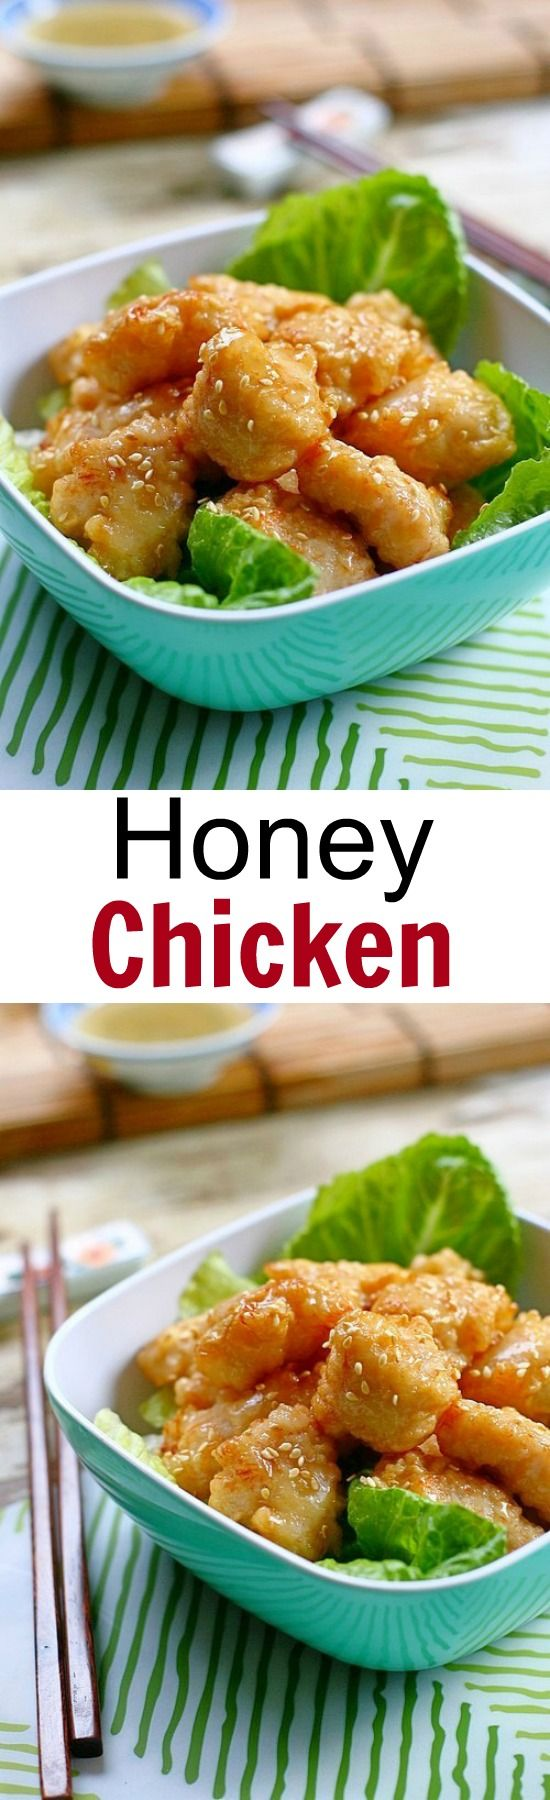 436 best chinese recipes images on pinterest chinese recipes honey chicken is a popular chinese recipe easy honey chicken with simple ingredients honey forumfinder Choice Image